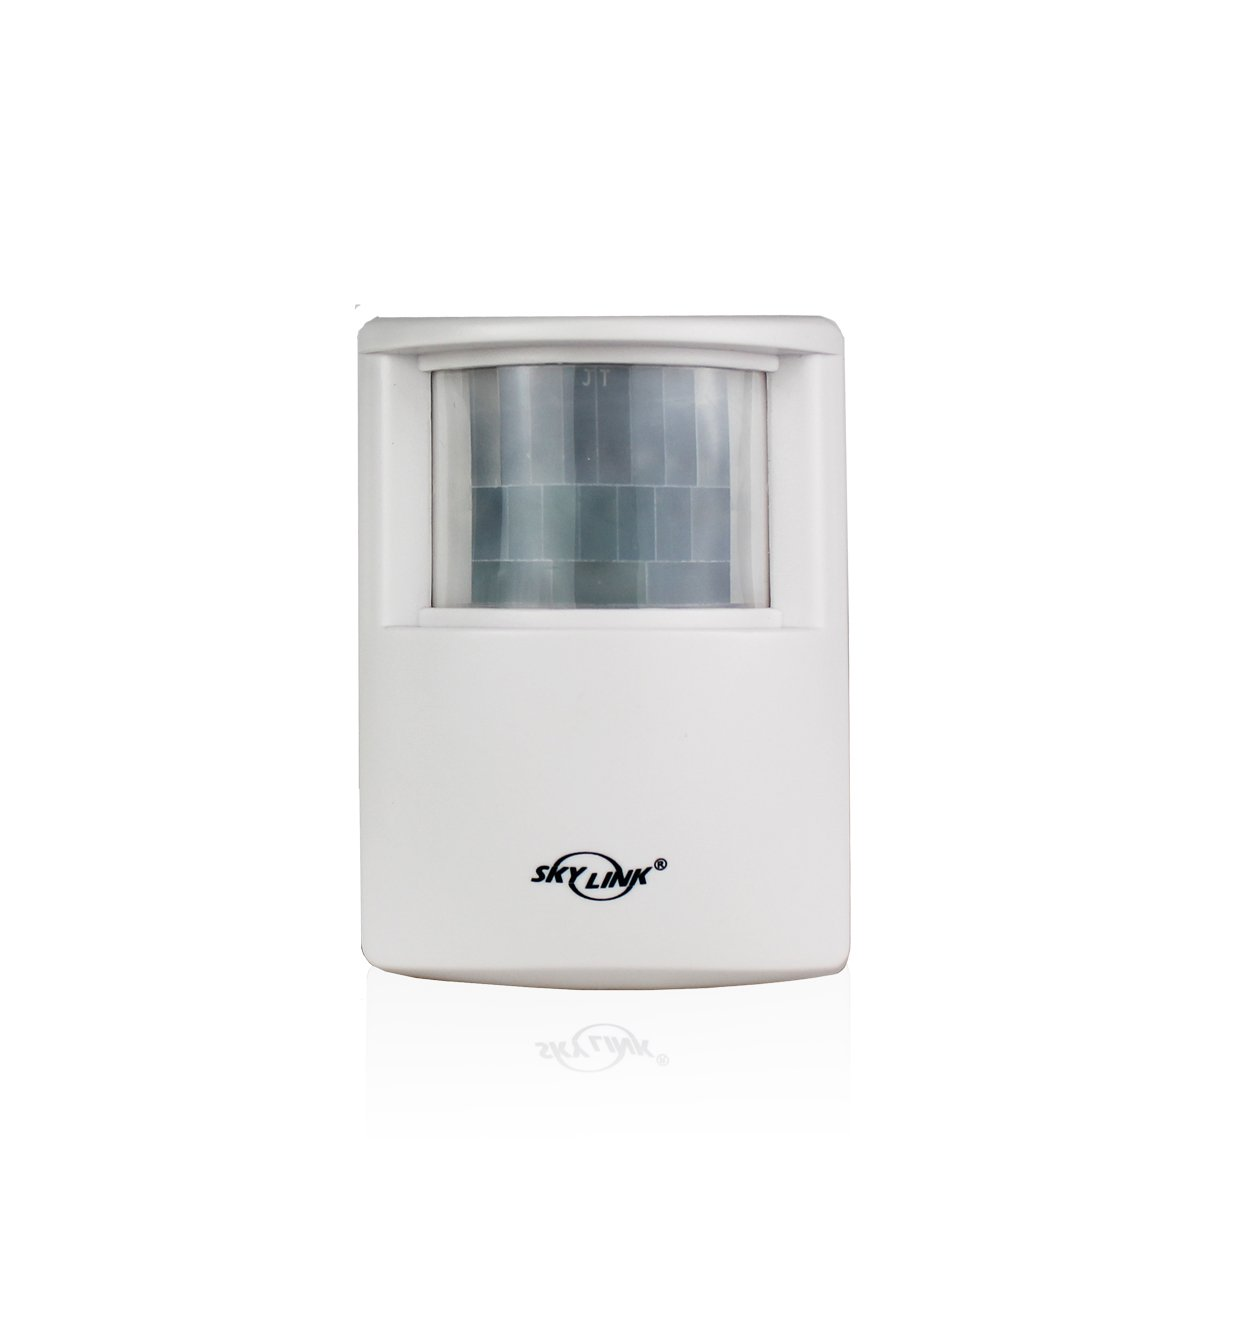 SkylinkHome ID-318 Wireless Water Resistant Motion Sensor Automatic  Light Activated  Energy Savings Transmitter for Indoor and Outdoor  Home Automation